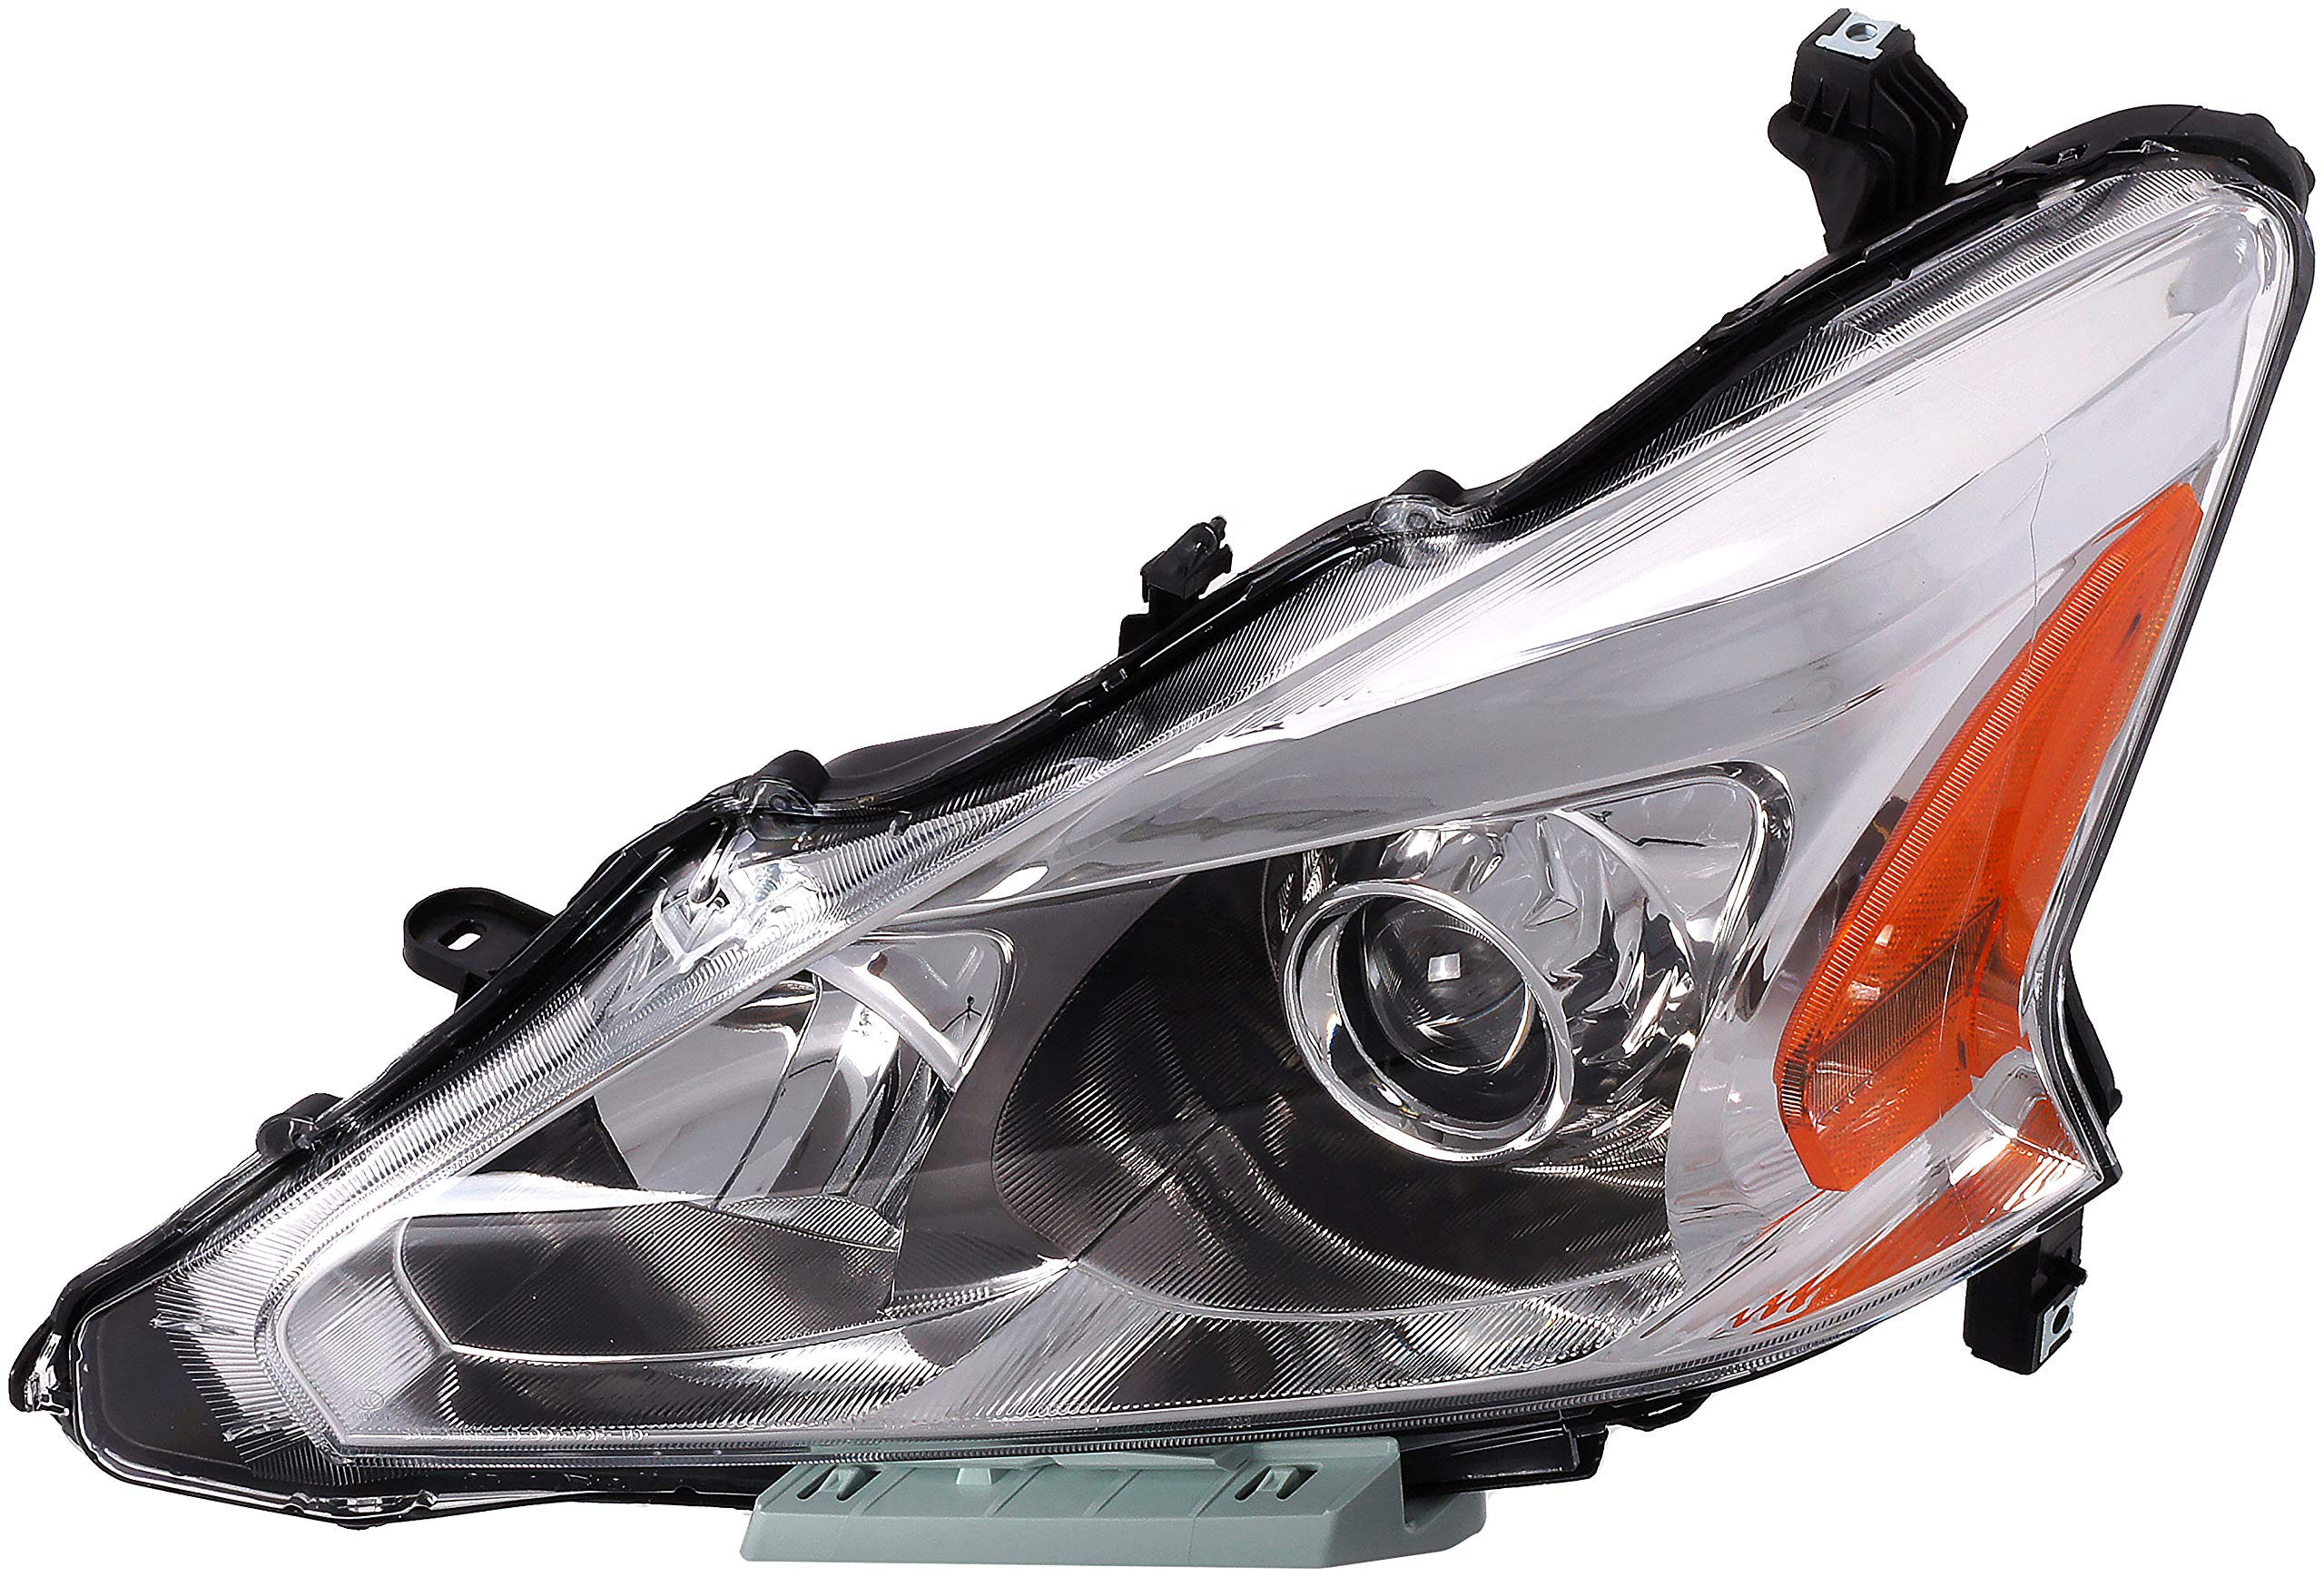 Dorman 1592503 Front Driver Side Headlamp Assembly for Select Nissan Models by Dorman